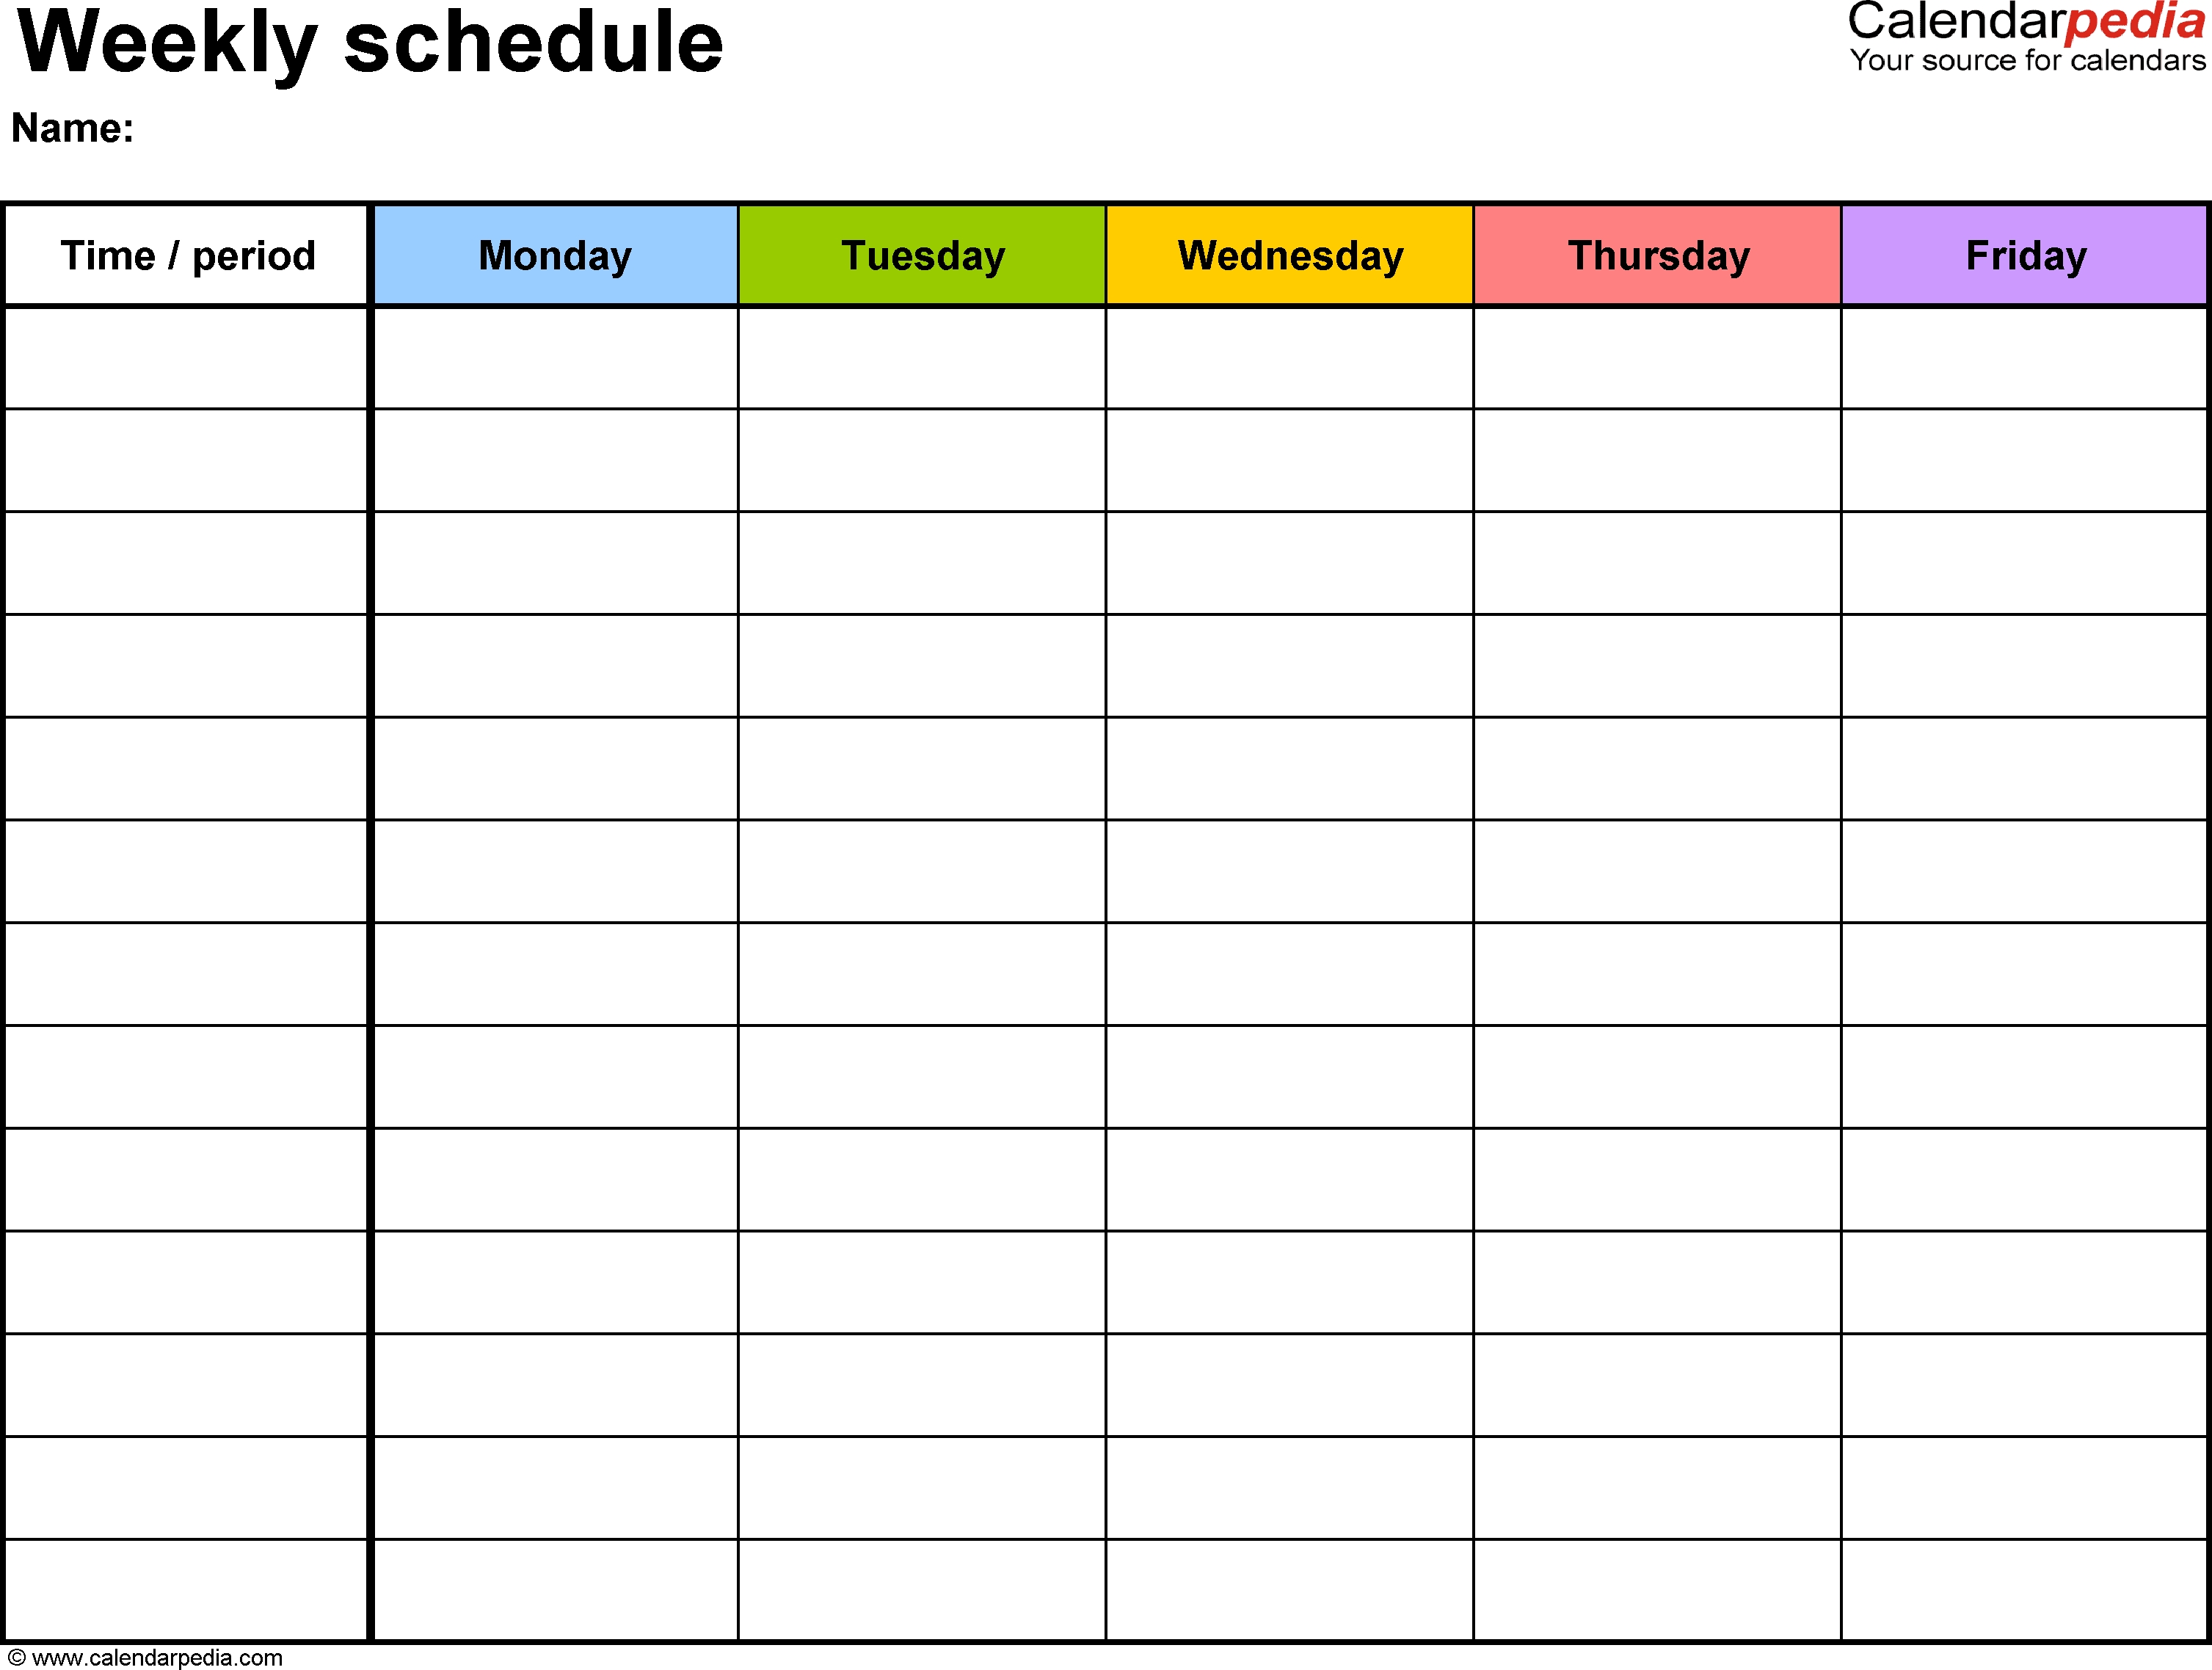 Free Weekly Schedule Templates For Word - 18 Templates  Free Blank Printable Weekly Calendar Template